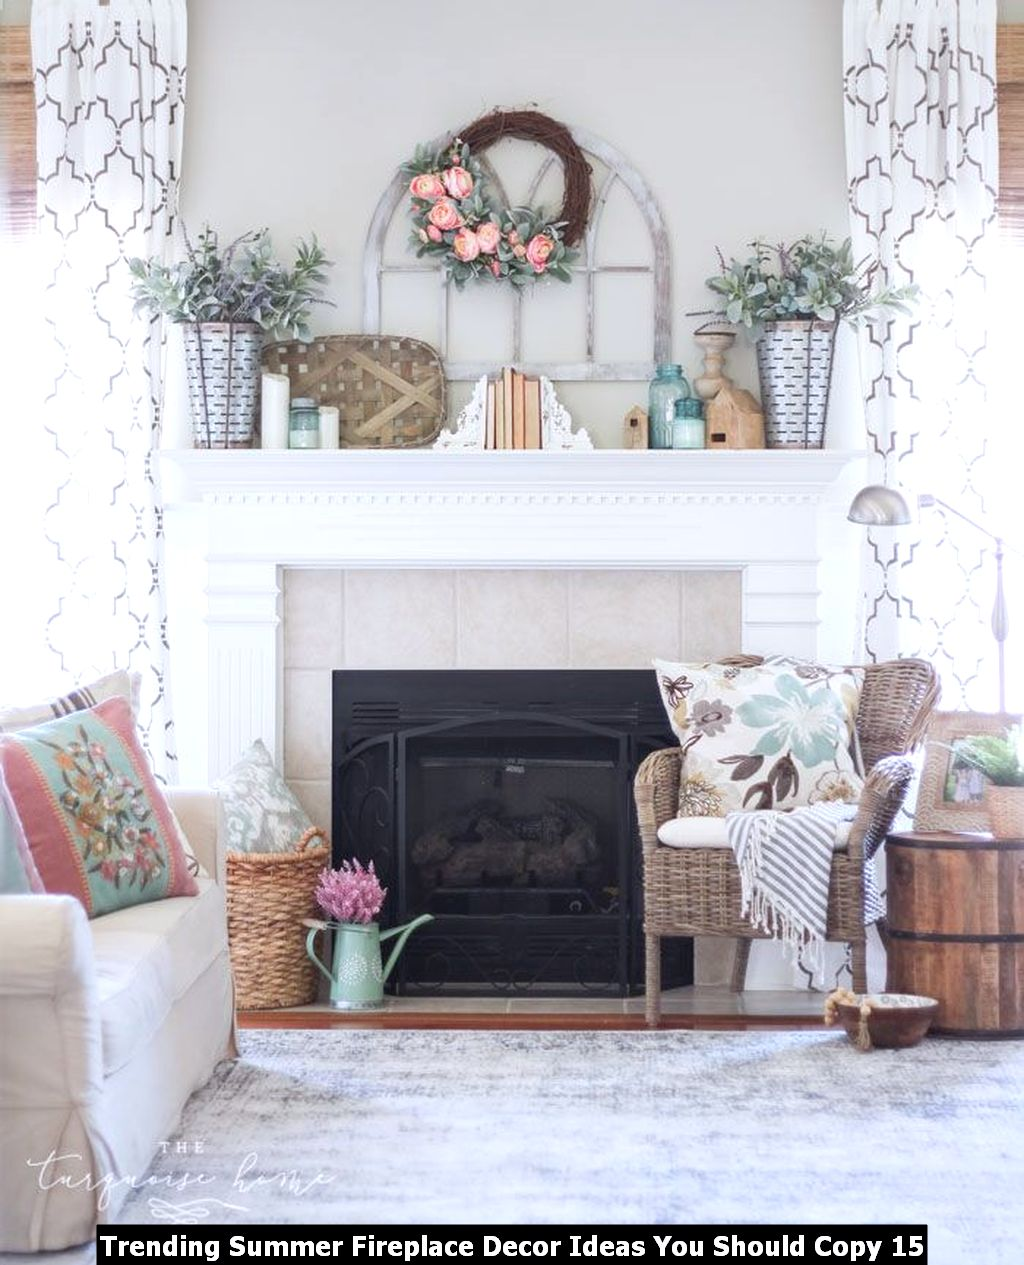 Trending Summer Fireplace Decor Ideas You Should Copy 15